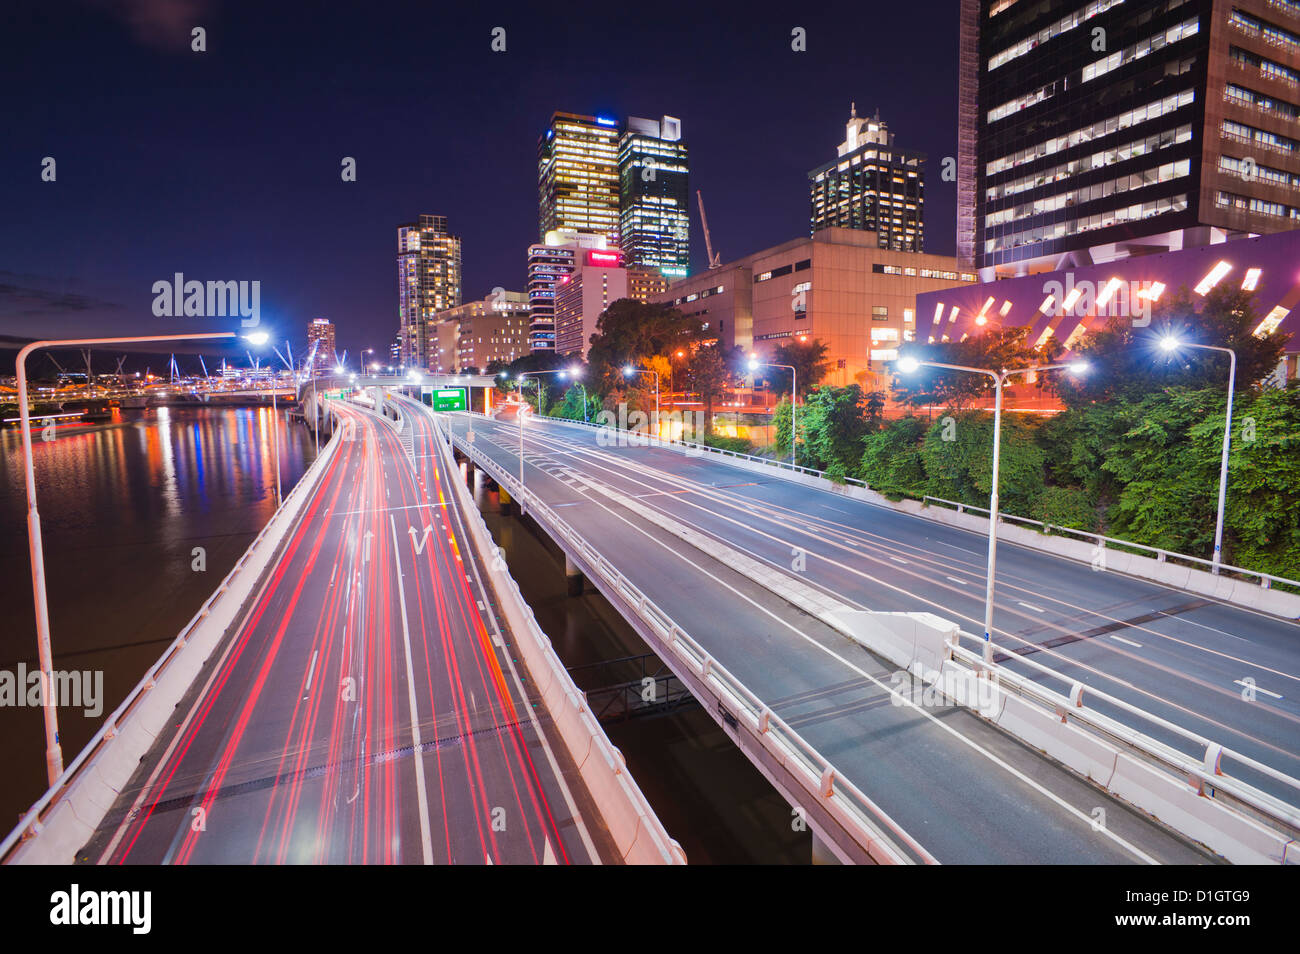 Highway in Brisbane, car light trails at night, Brisbane, Queensland, Australia, Pacific - Stock Image